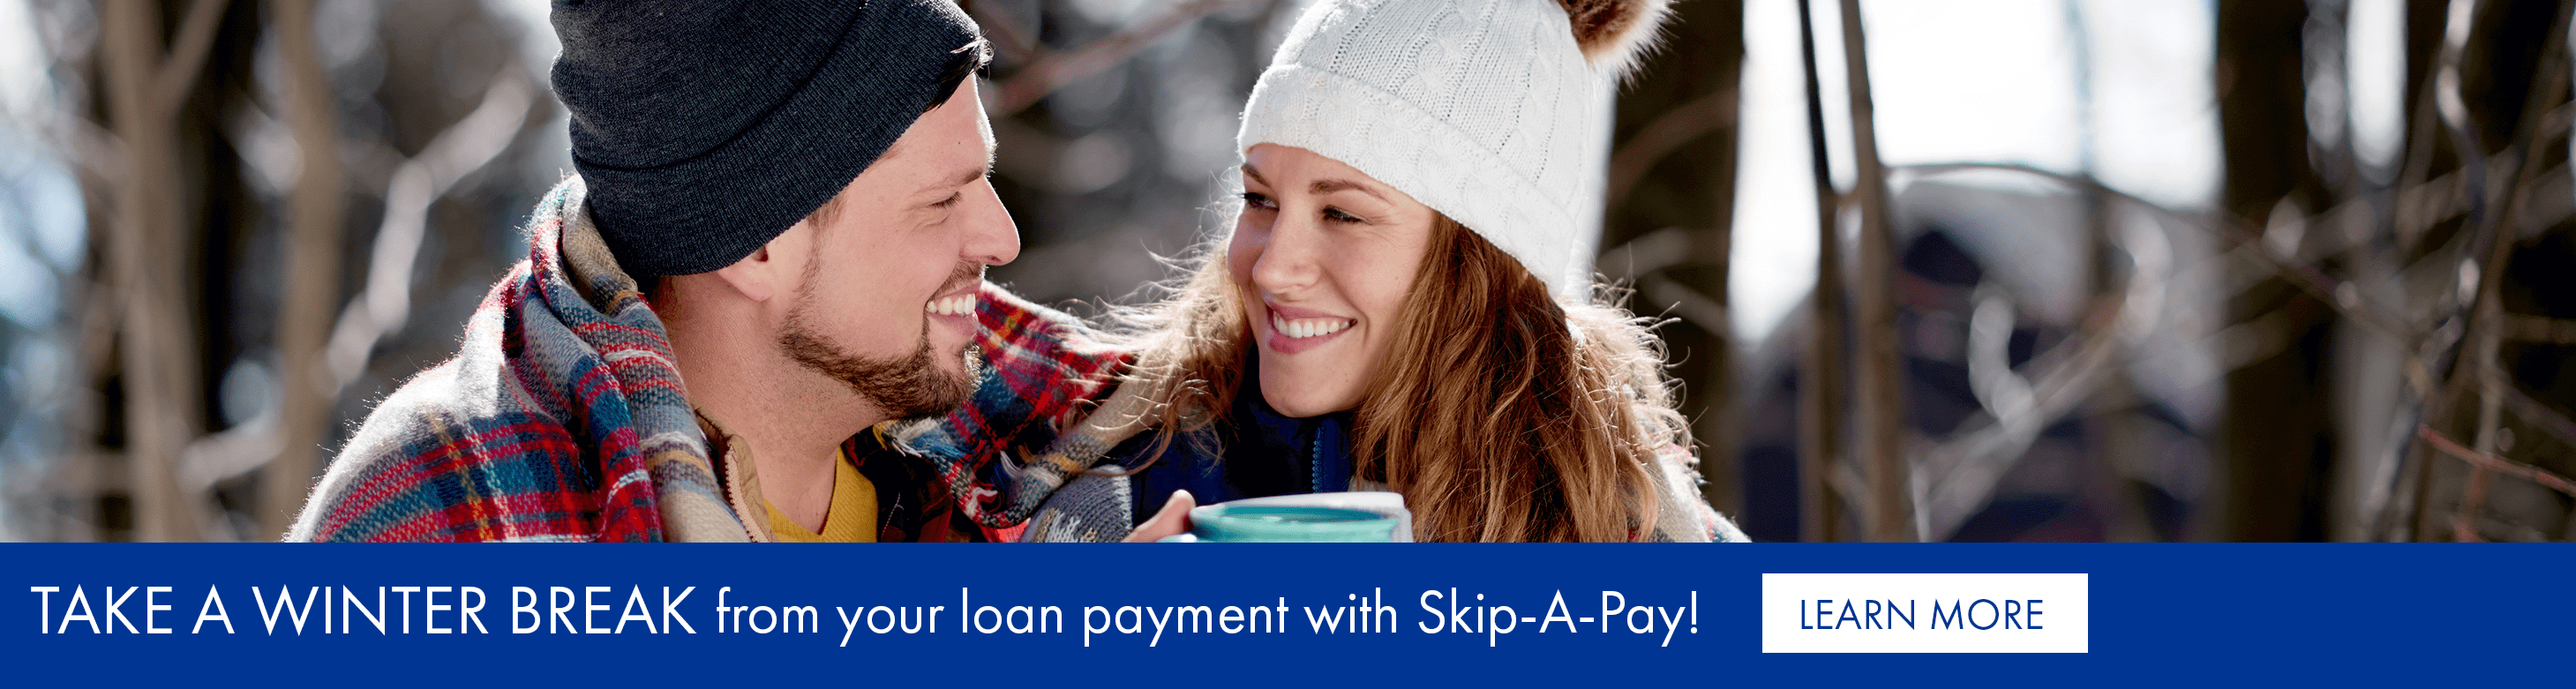 Take a winter break from your next loan payment with skip-a-pay!